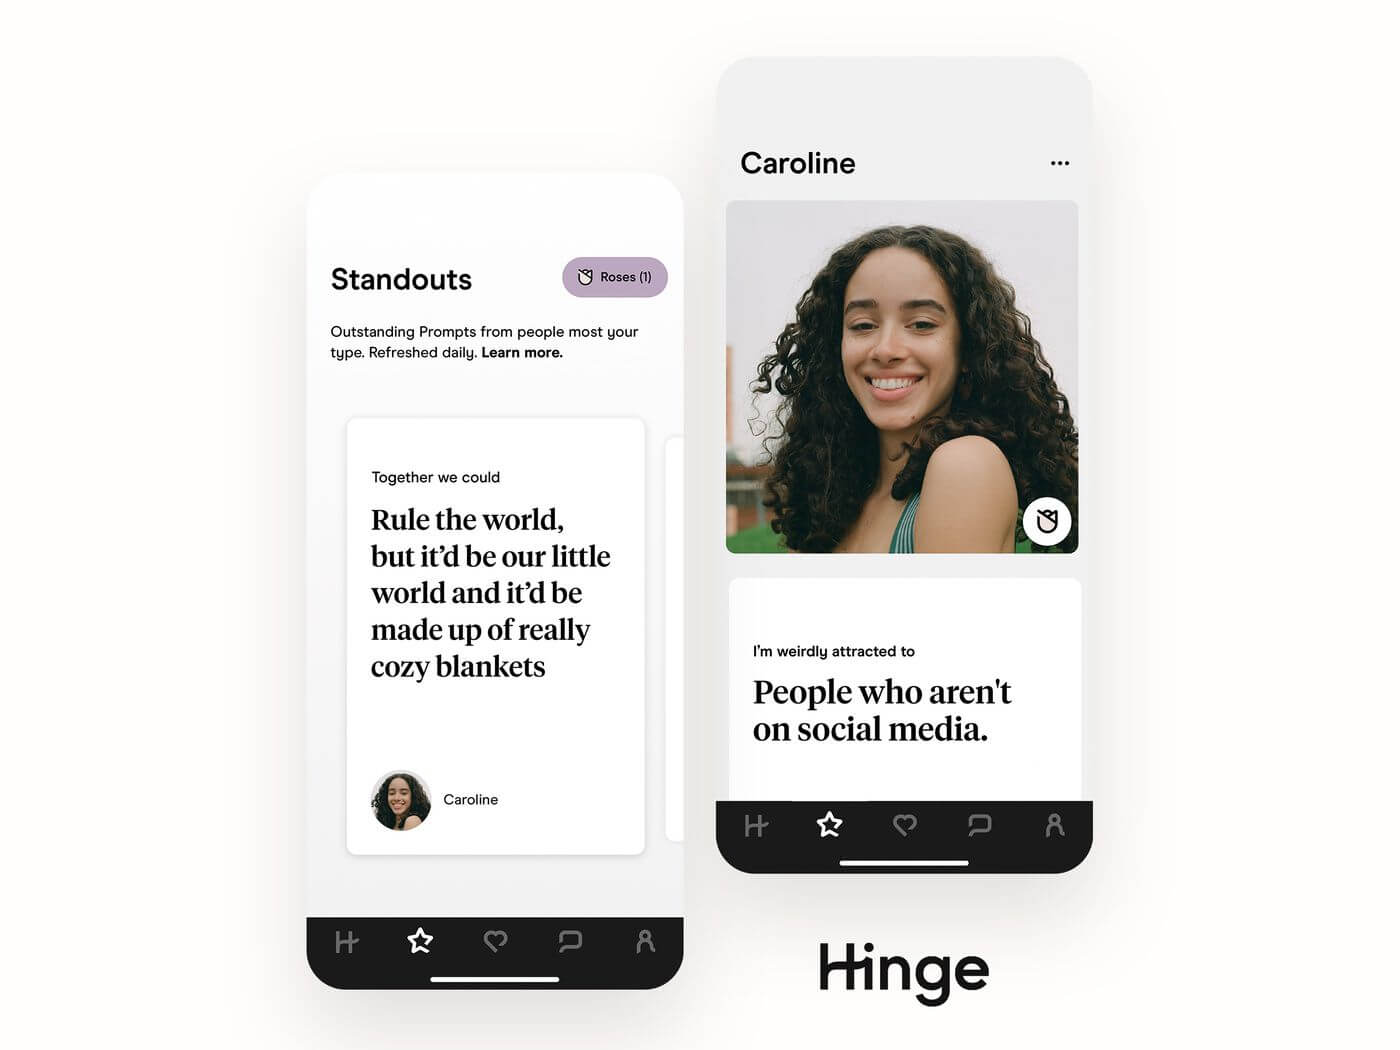 What is the Rose on Hinge - Standouts and Roses